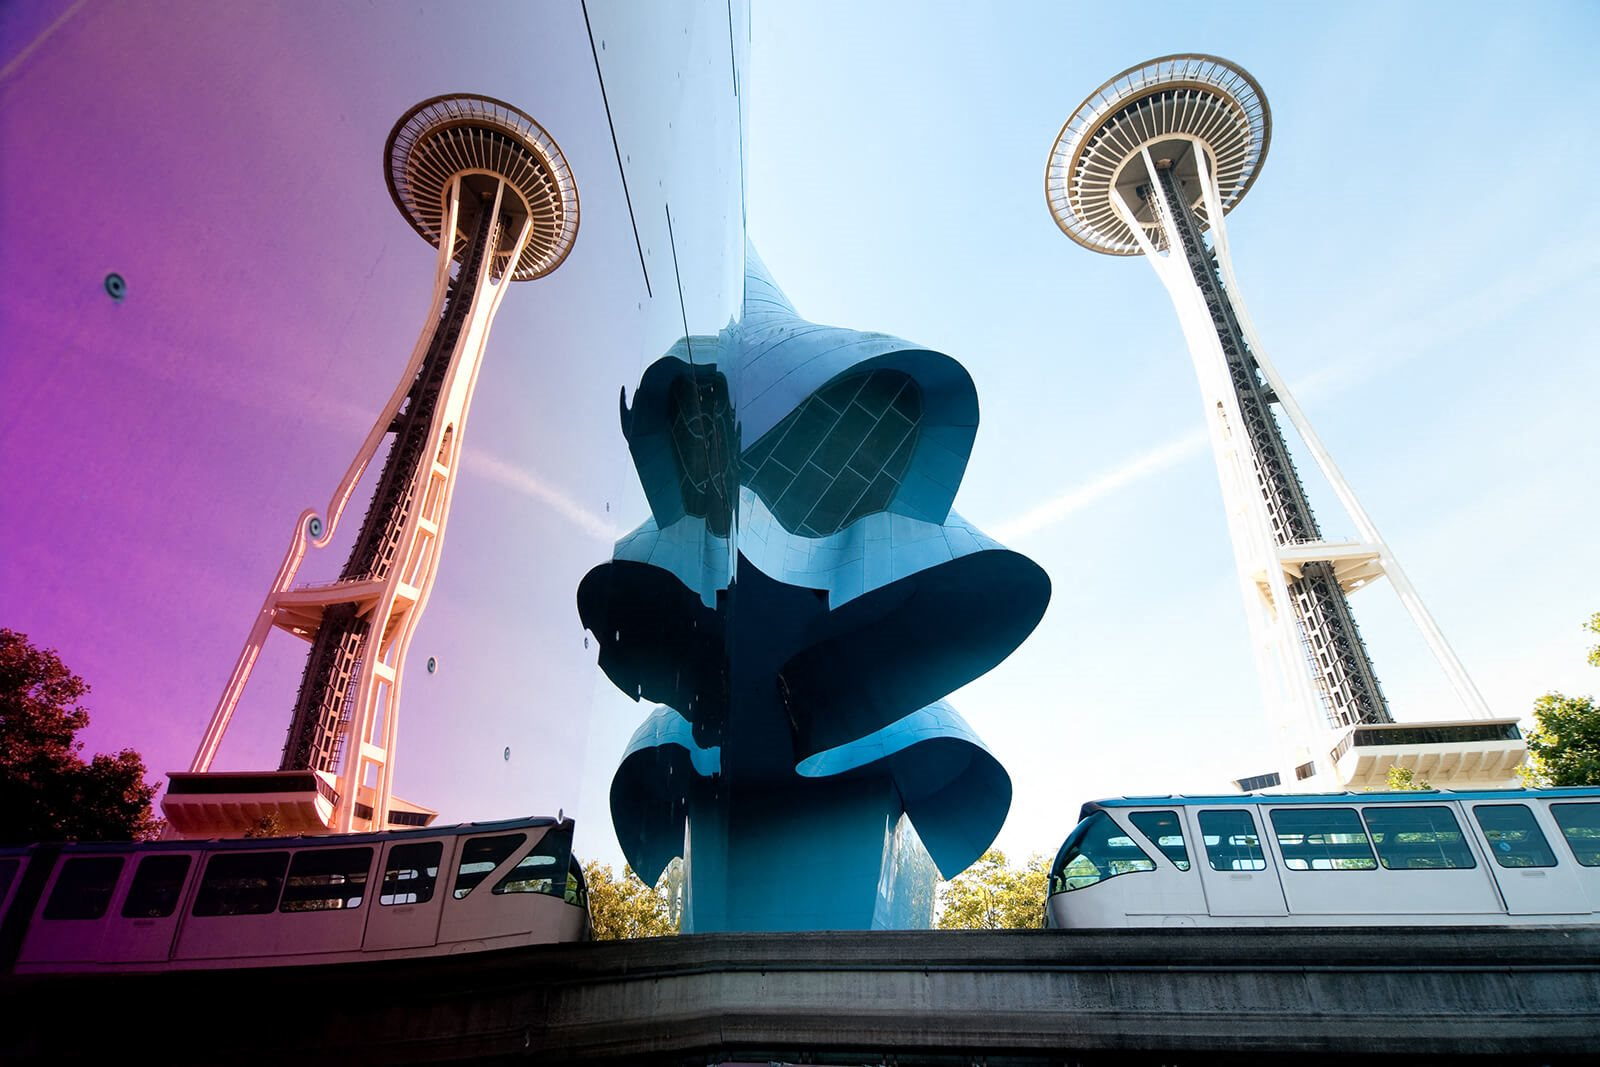 Space Needle and MoPOP are nearby at Cirrus, Washington, 98121